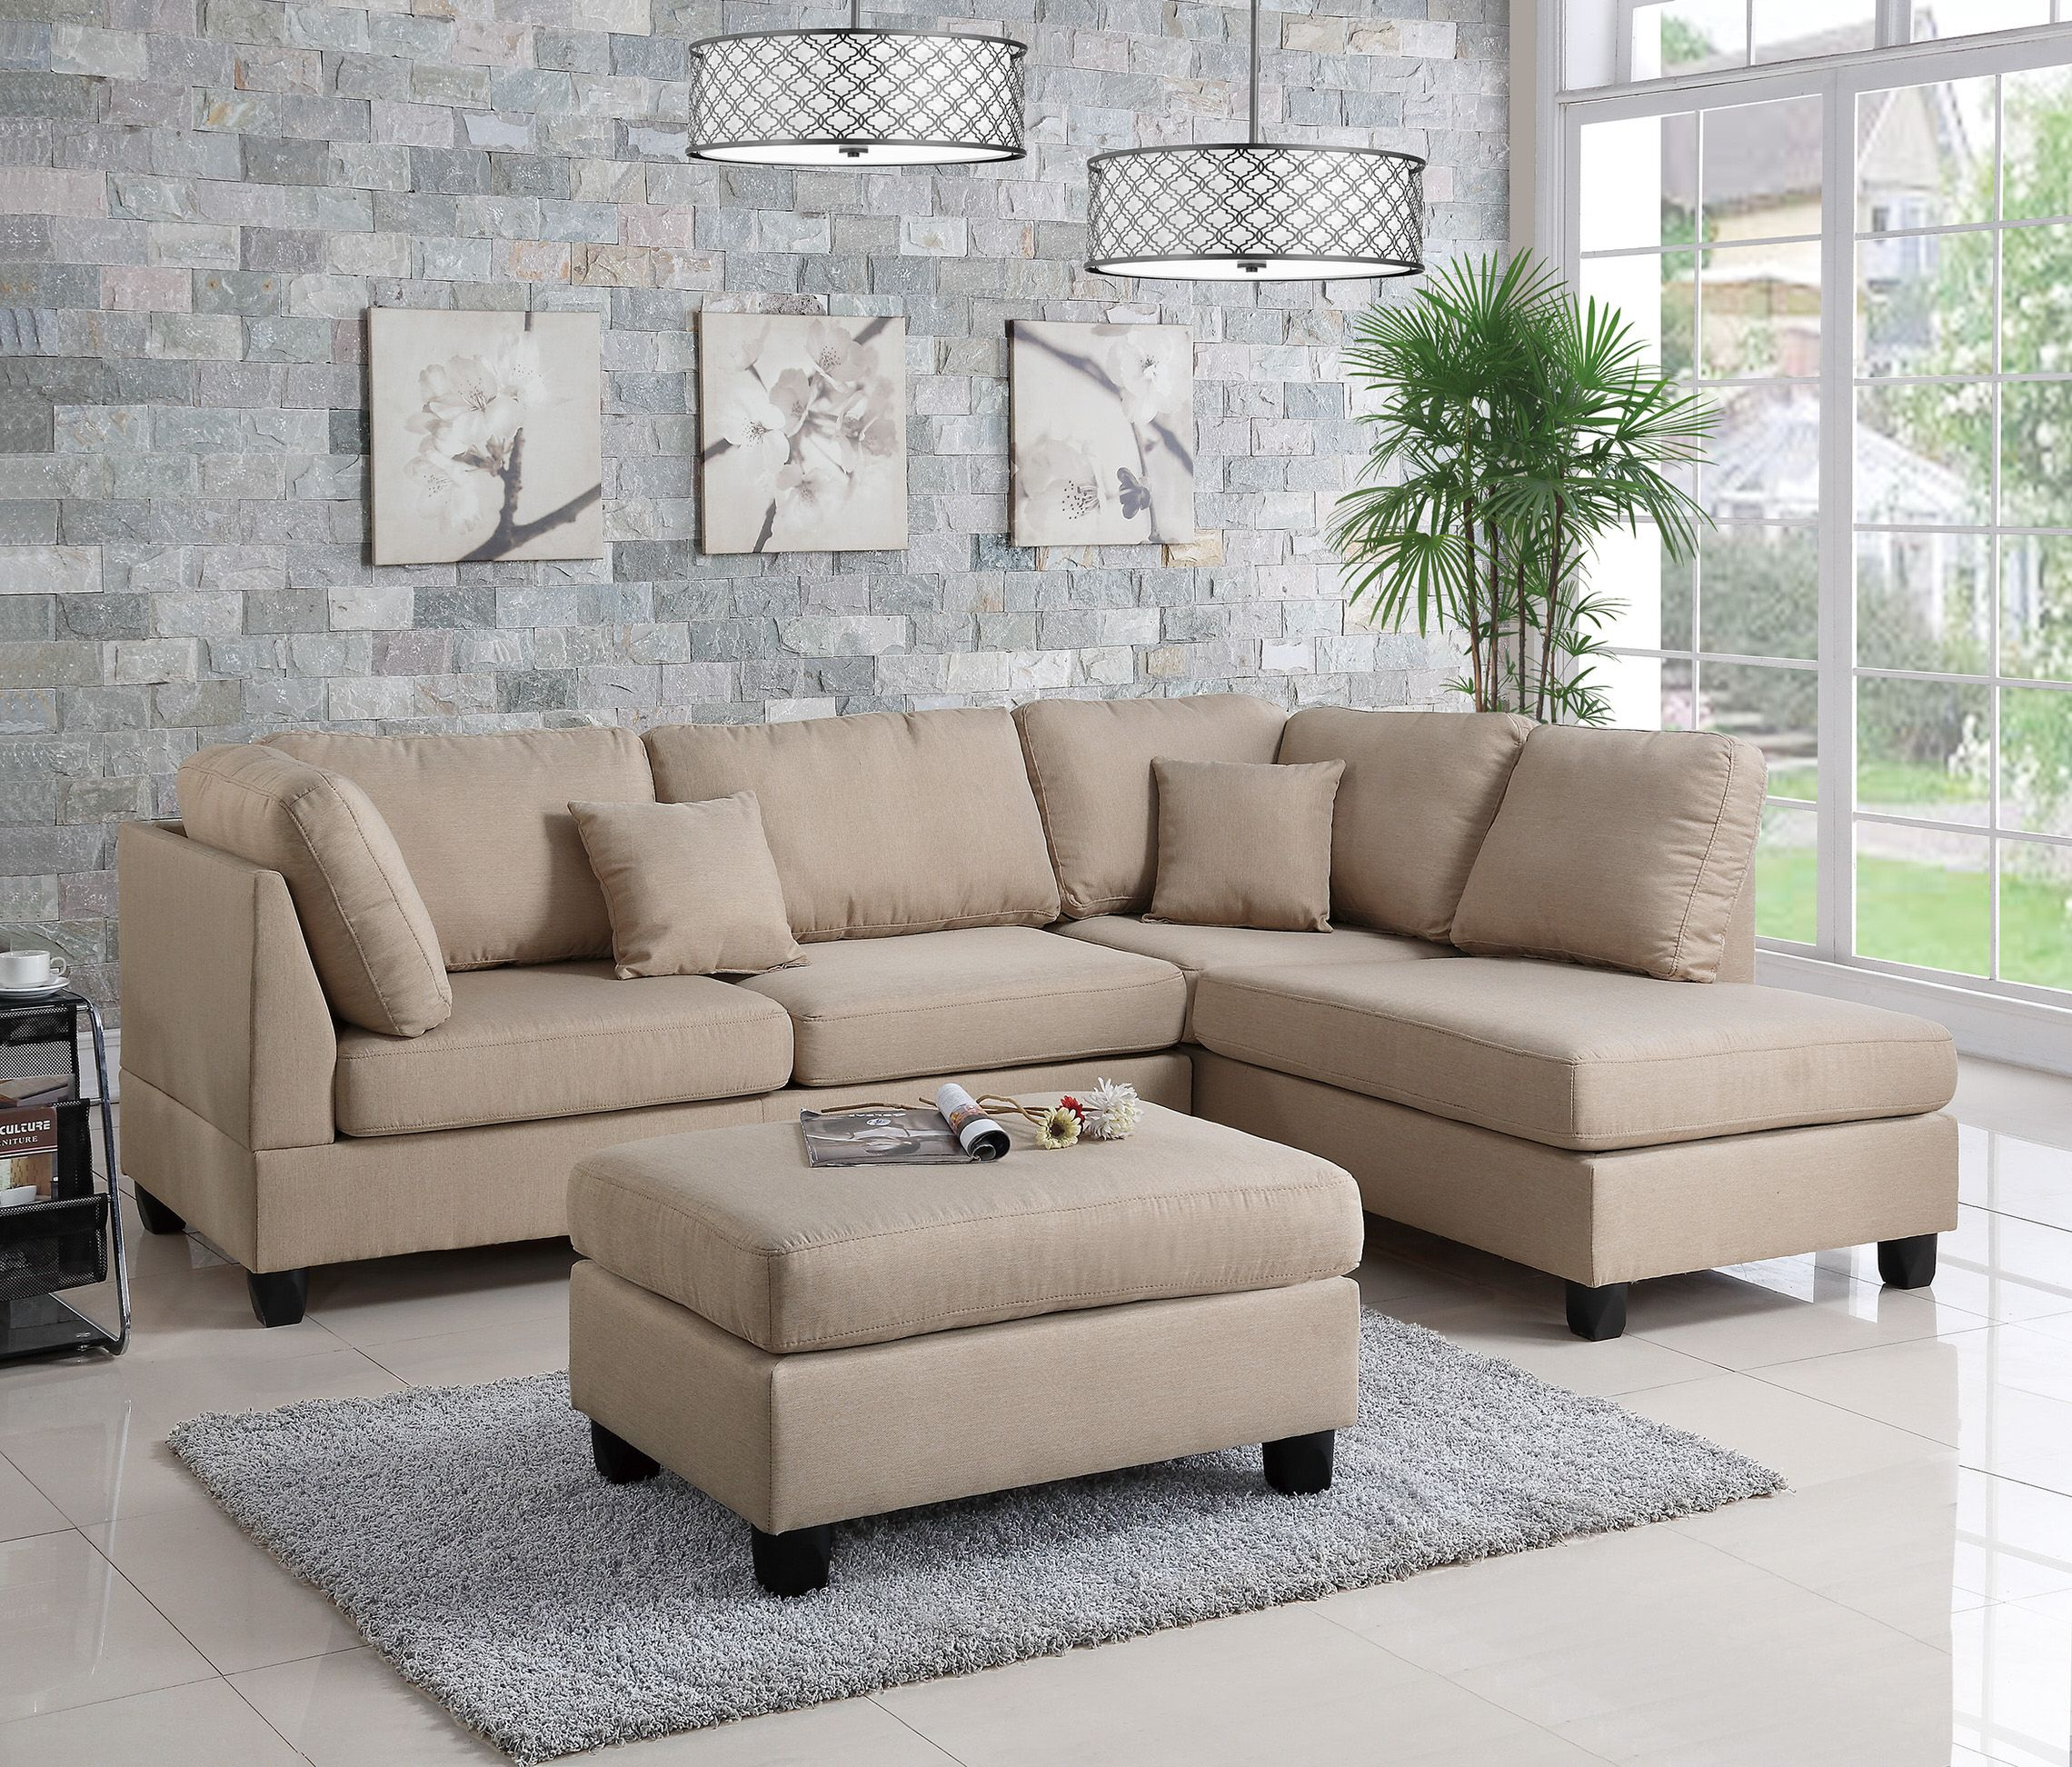 Sensational F7605 Sand 2 Pcs Sectional Sofa Set By Poundex In 2019 Big Inzonedesignstudio Interior Chair Design Inzonedesignstudiocom